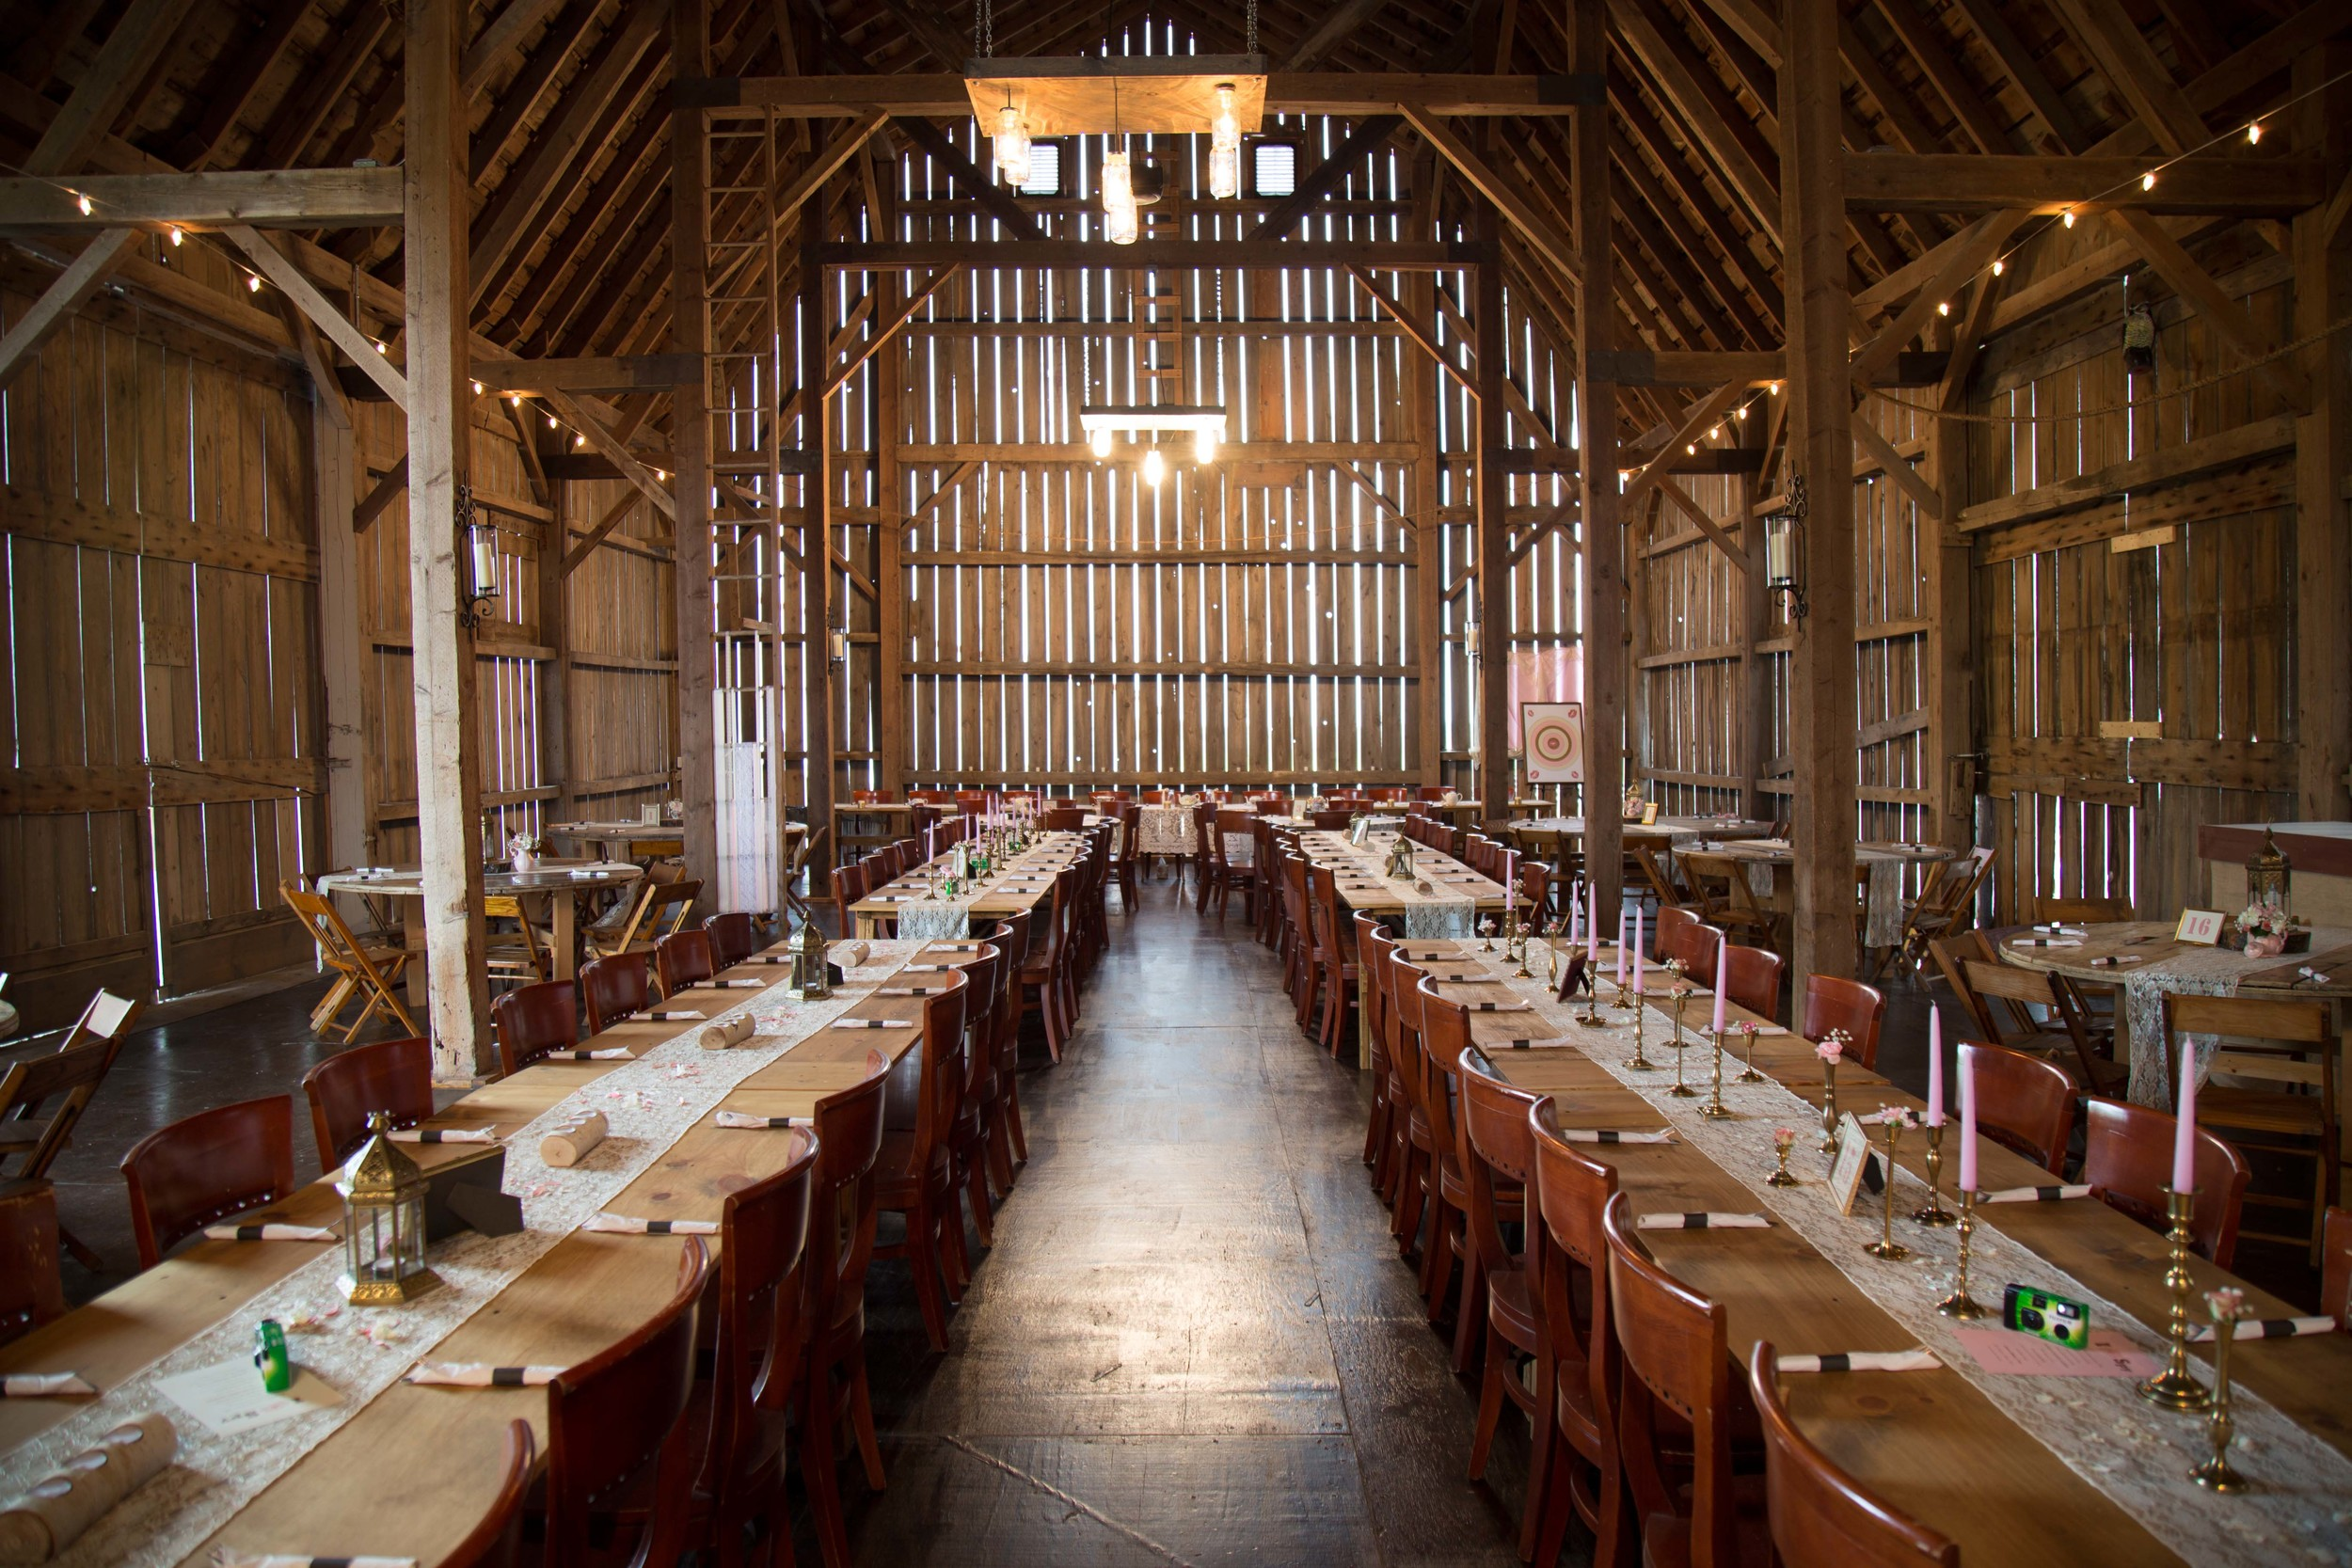 5_29-Barn_Dinner_Table_layout_5451_2.jpg